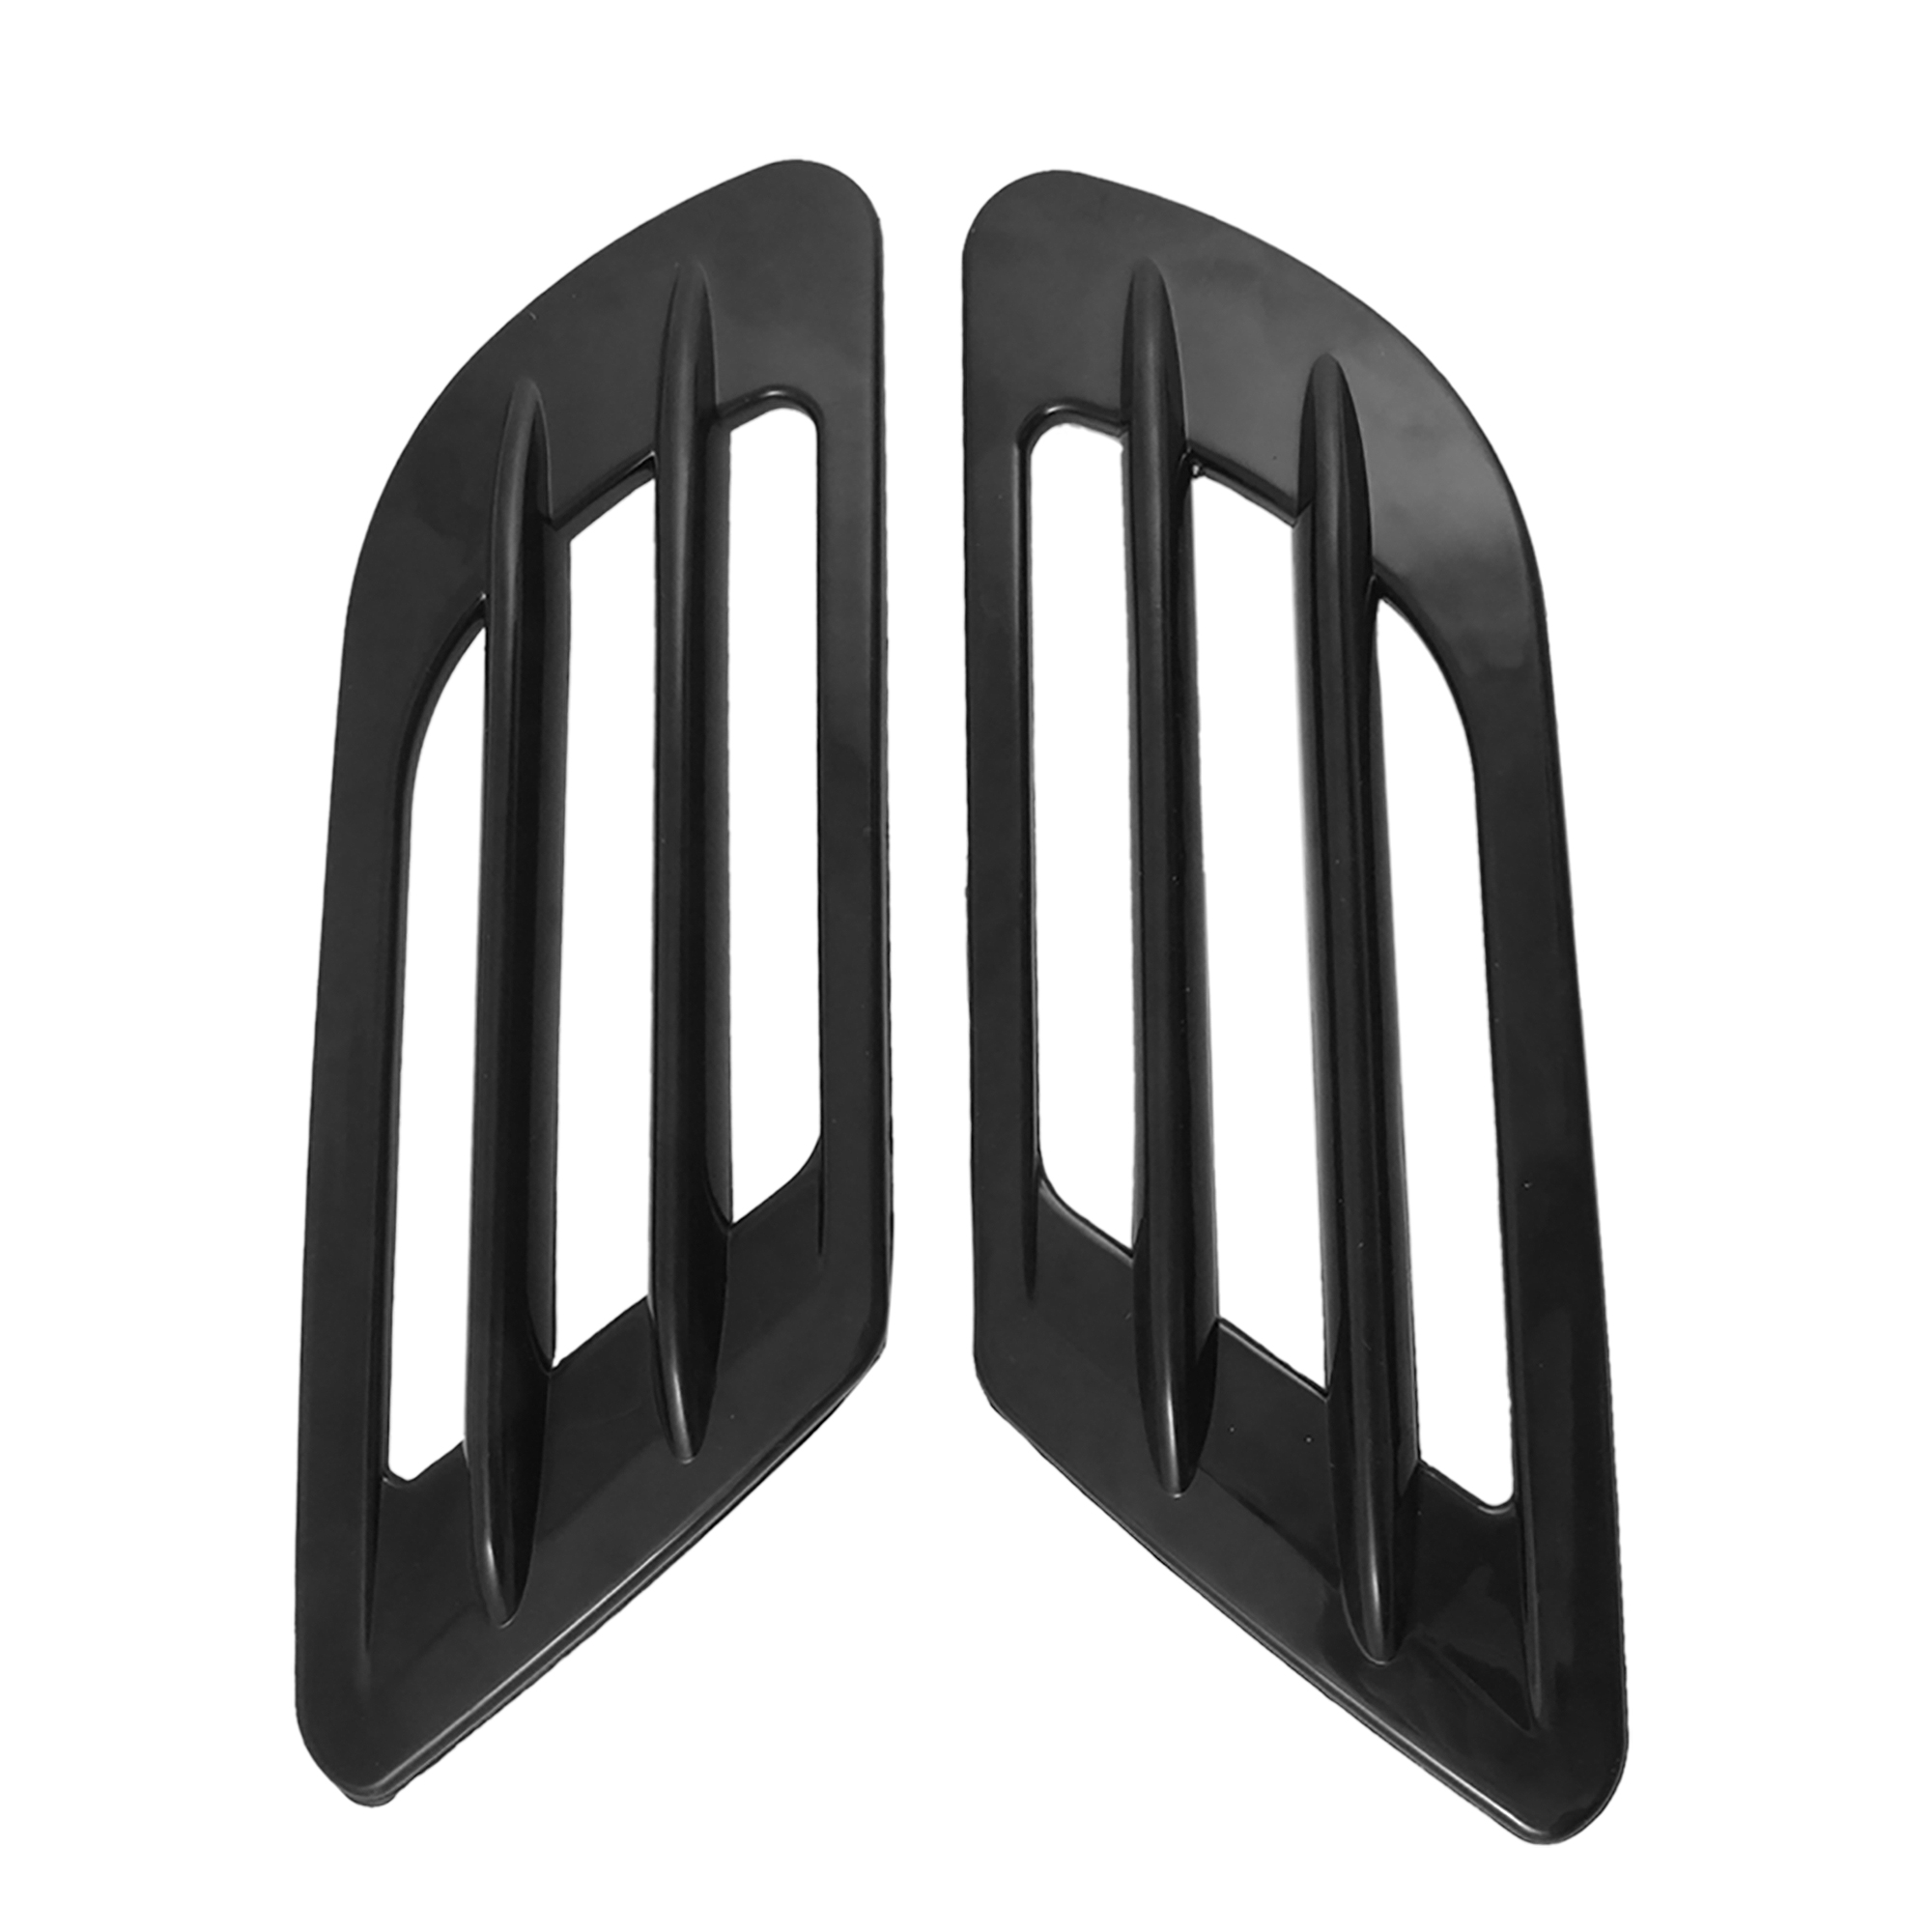 2PCS Black Universal Car Side Vent Air Flow Fender 3D Sticker Decor